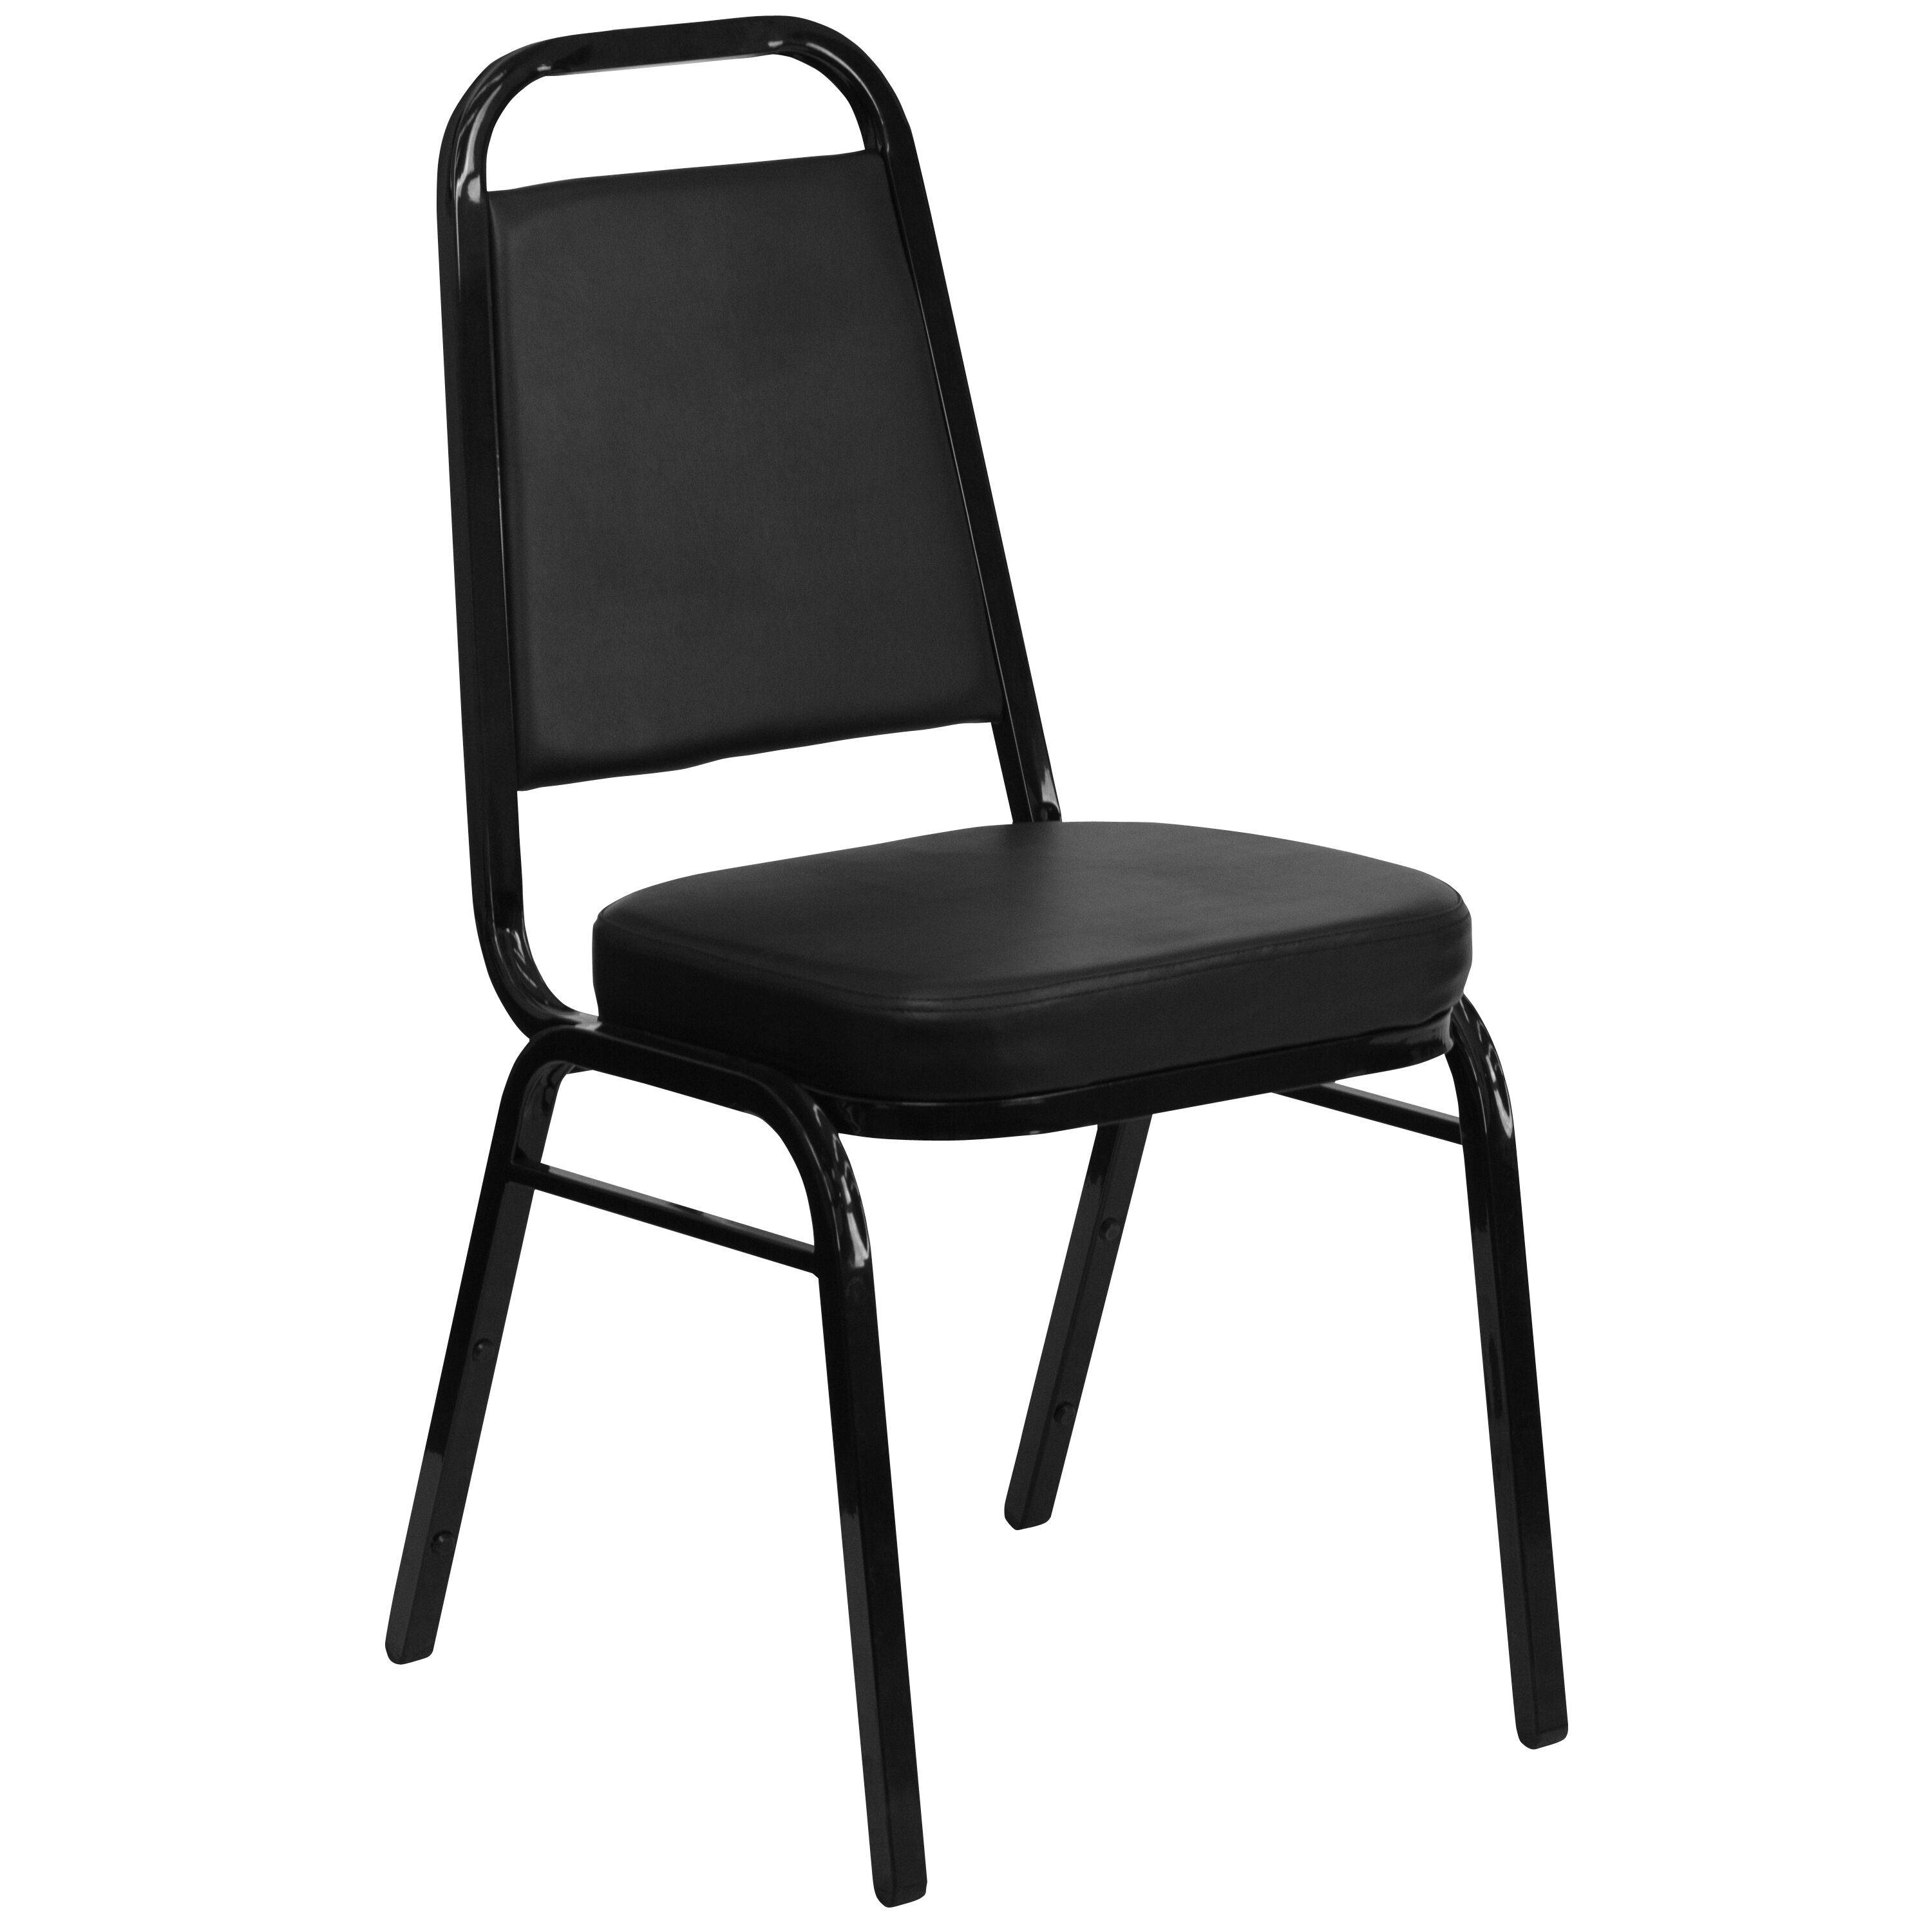 Gentil Product FD BHF 1 Video; Our HERCULES Series Trapezoidal Back Stacking  Banquet Chair In Black Vinyl   Black Frame Is On ...